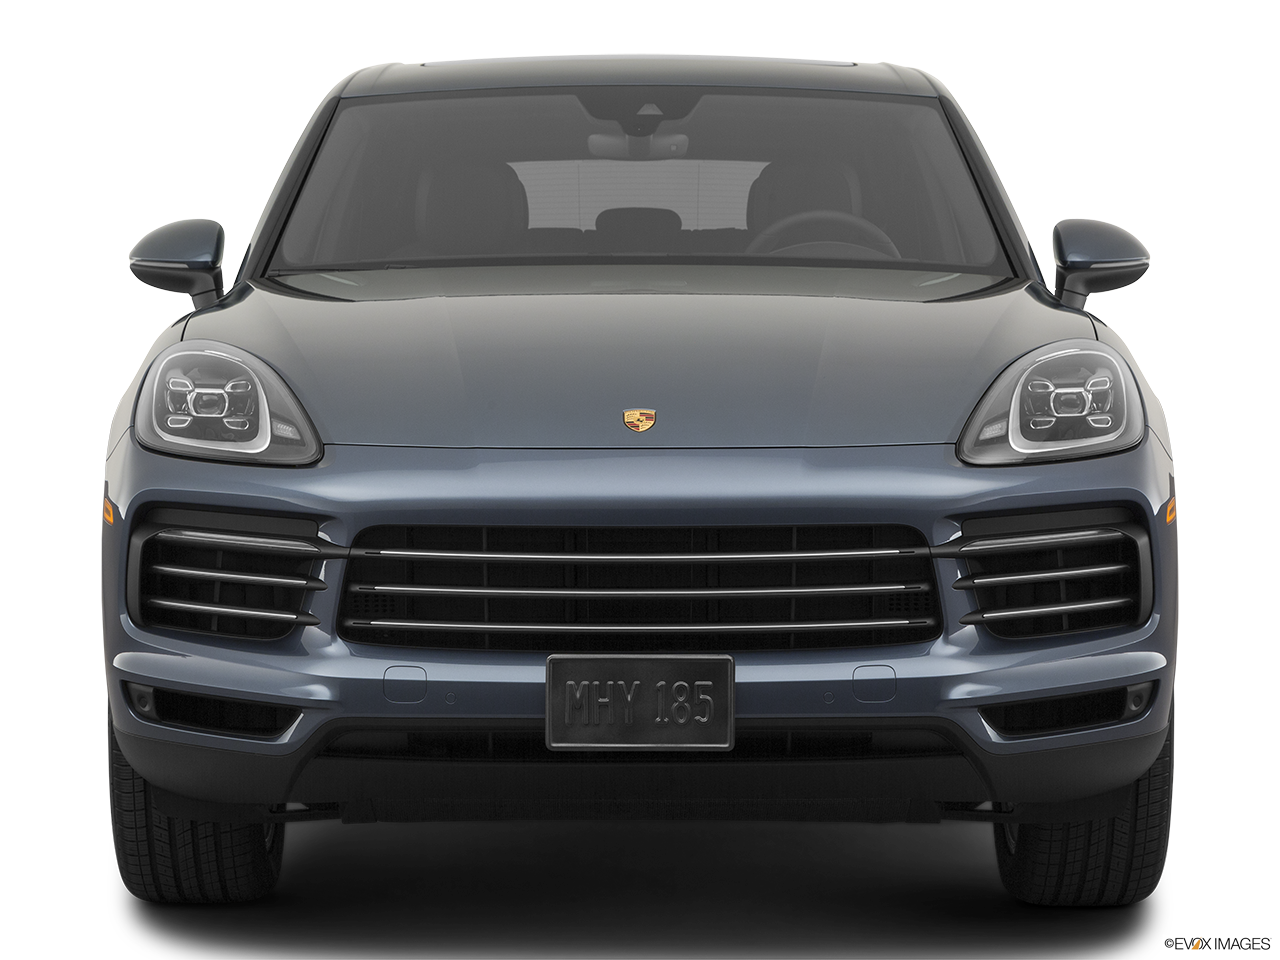 Front view of the Porsche Cayenne S E Hybrid